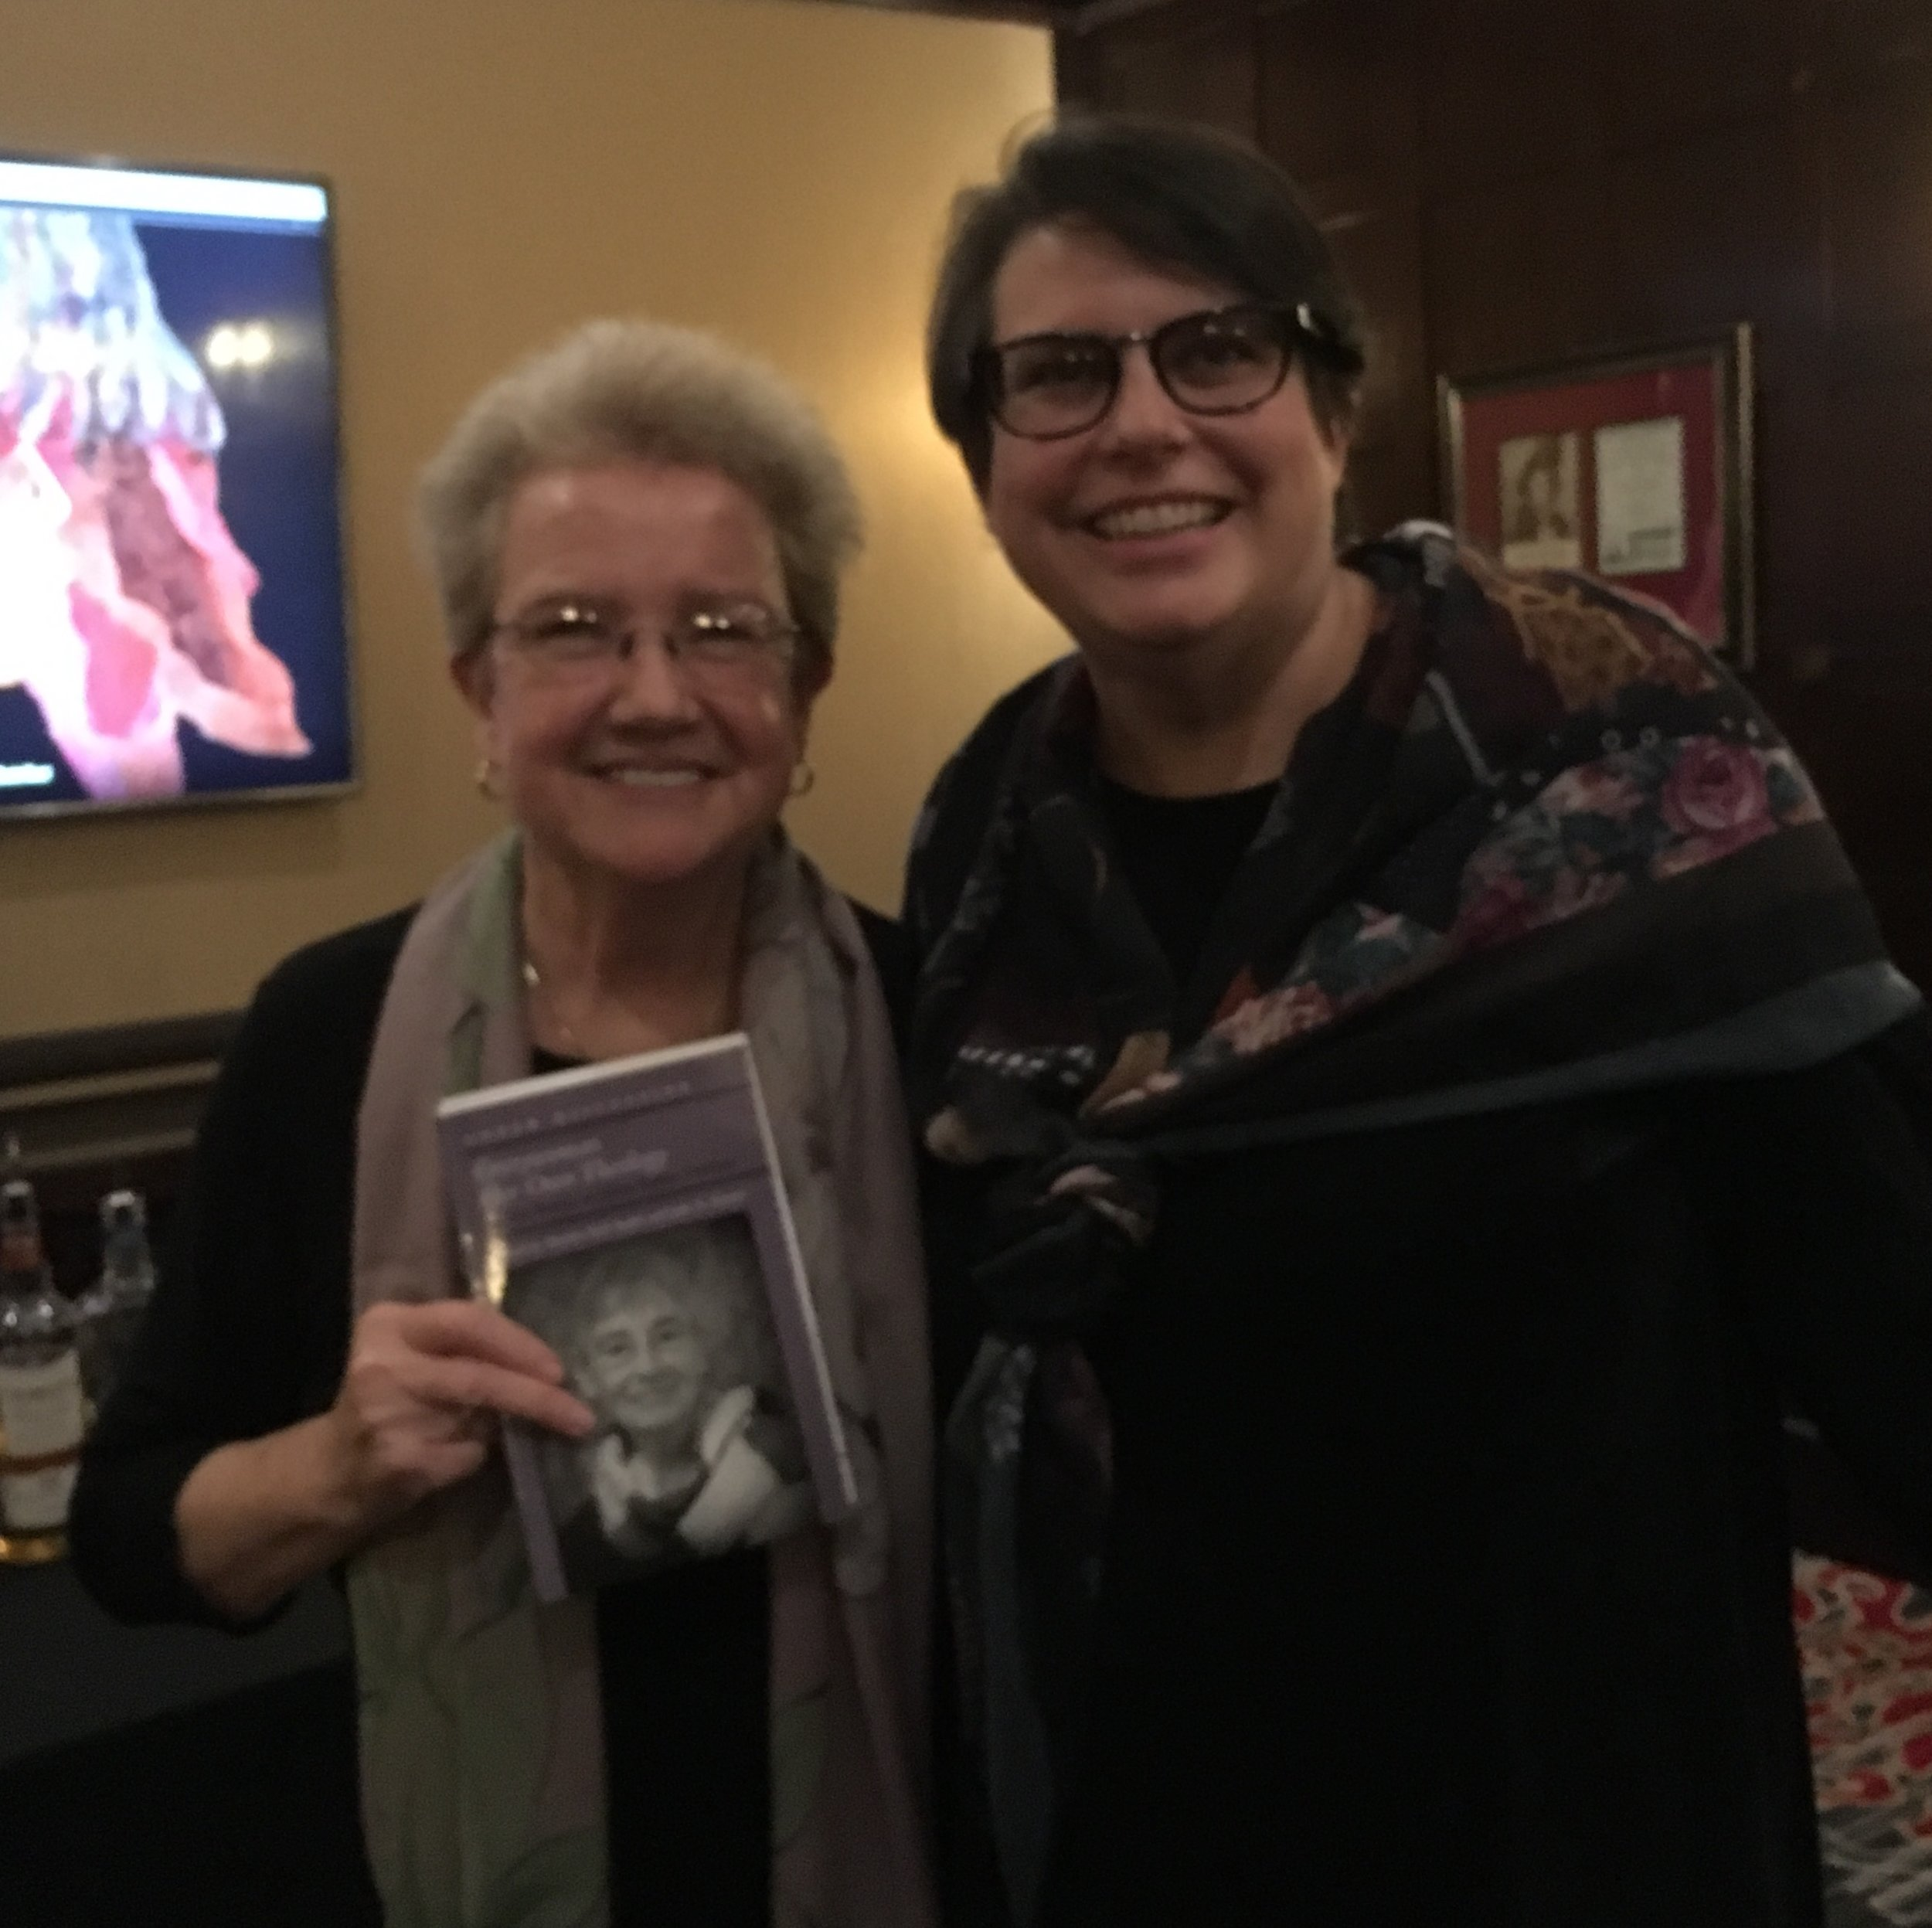 Martha Nell Smith and Julie R. Enszer, editors of Everywoman Her Own Theology: On the Poetry of Alicia Ostriker, at the Algonquin, November 2018.